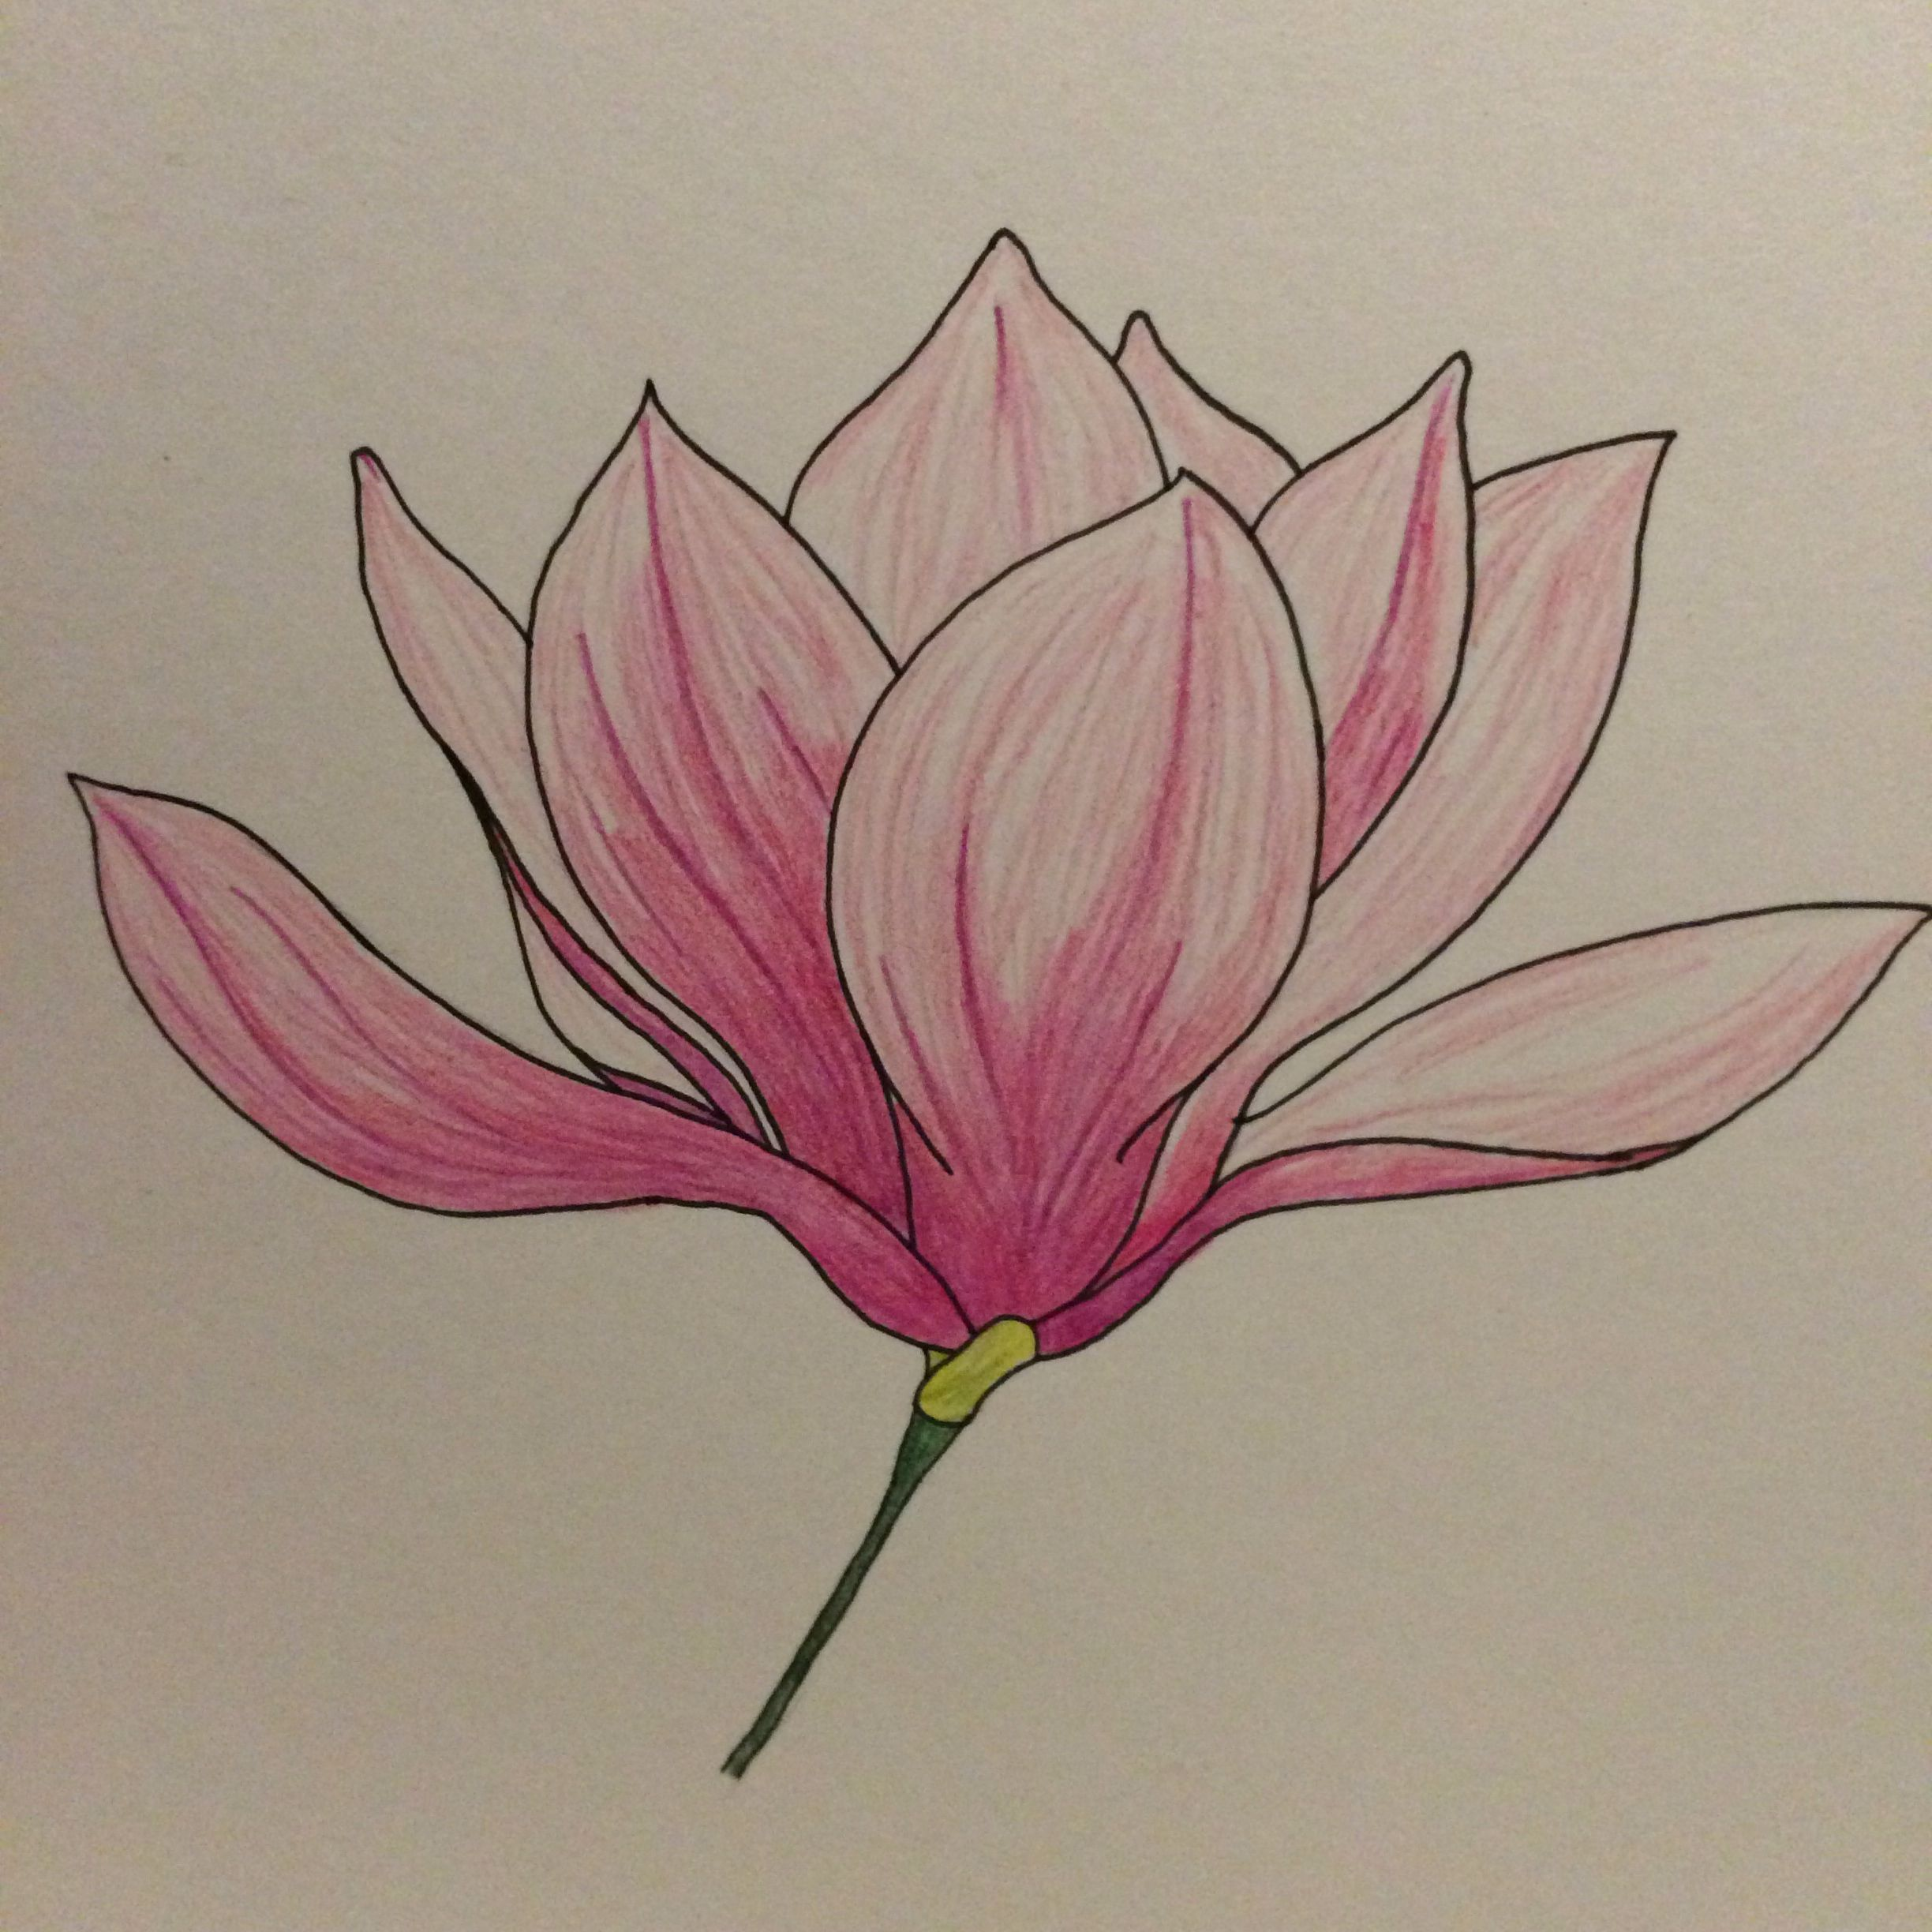 Colored Pencil Drawing Of A Pink Magnolia Flower Leaf Drawing Flower Painting Magnolia Colors